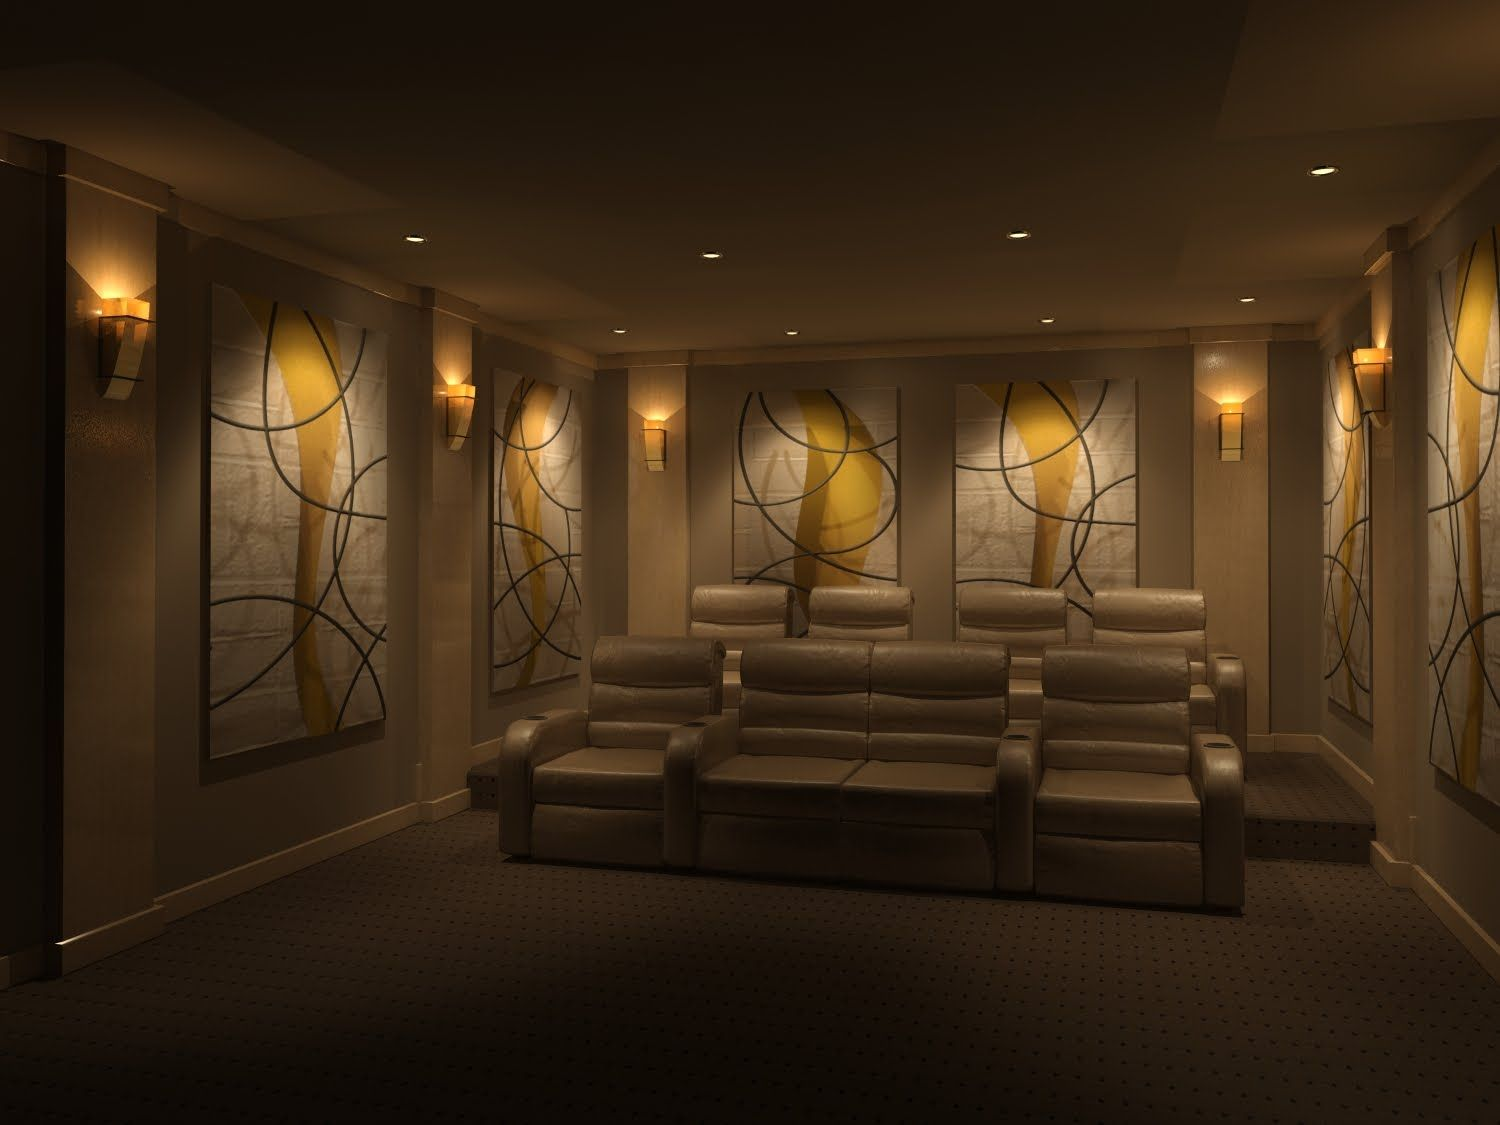 Charming Luxurious Home Theater Design With Beautiful Wallpaper Ideas And  Beige Soft Sofa A Part Of Charming Luxurious Home Theater Design W.